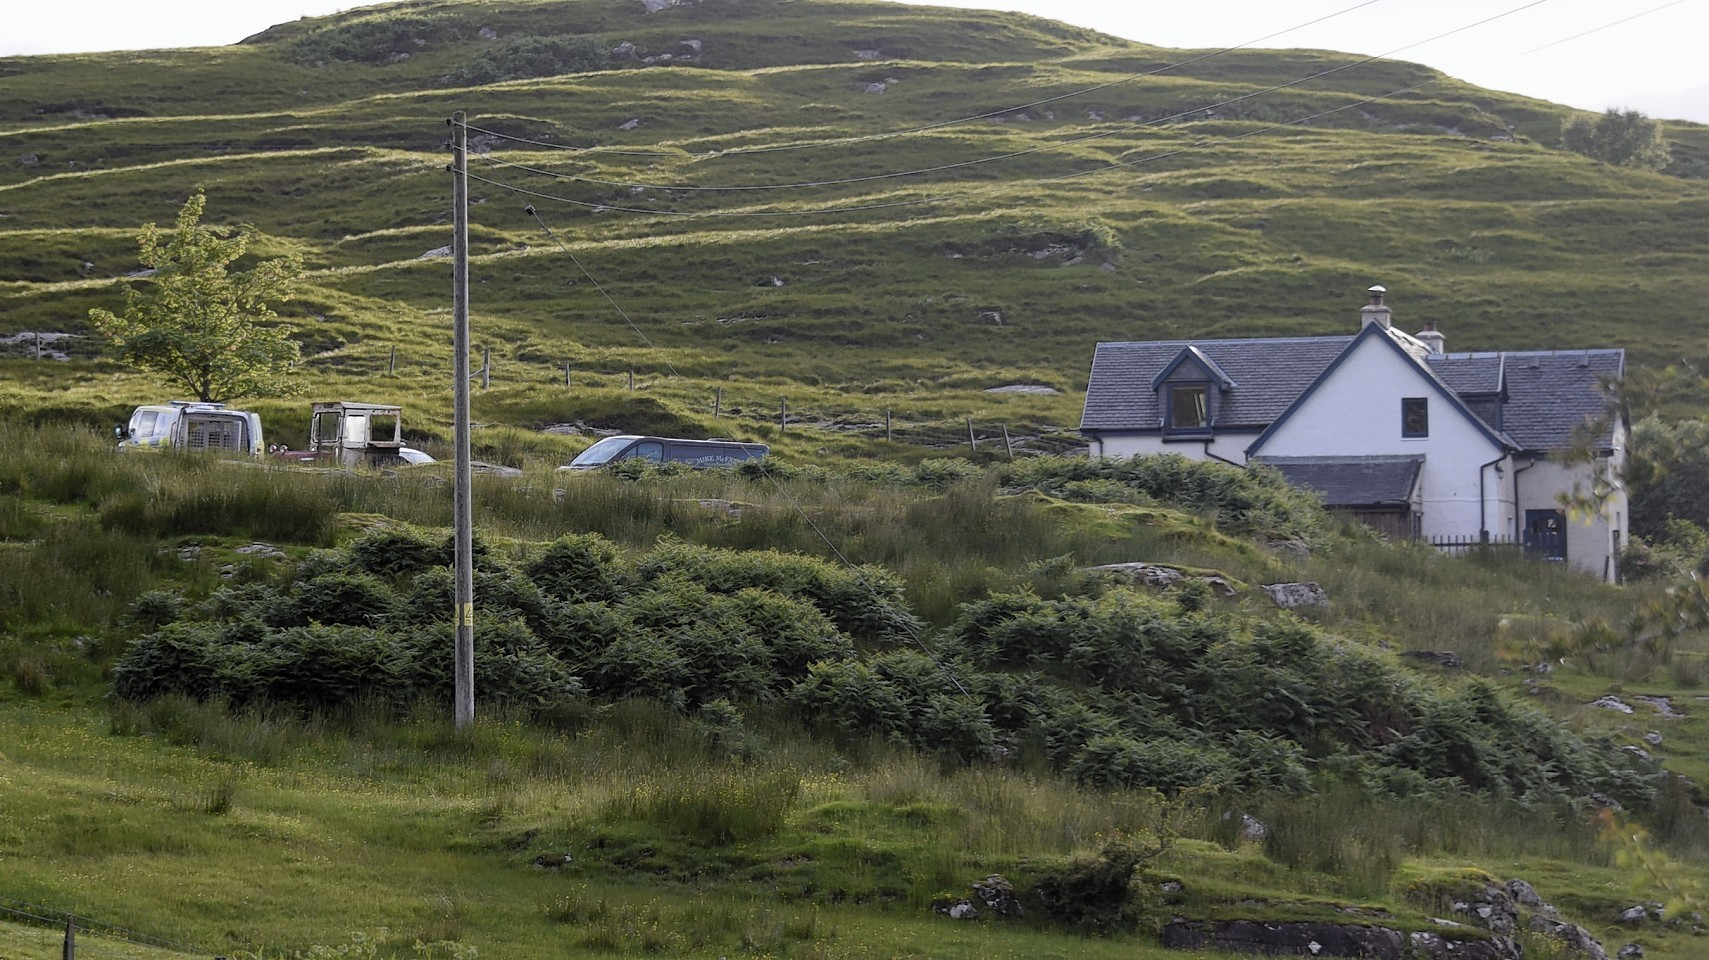 The house in Glenuig where the woman's body was found